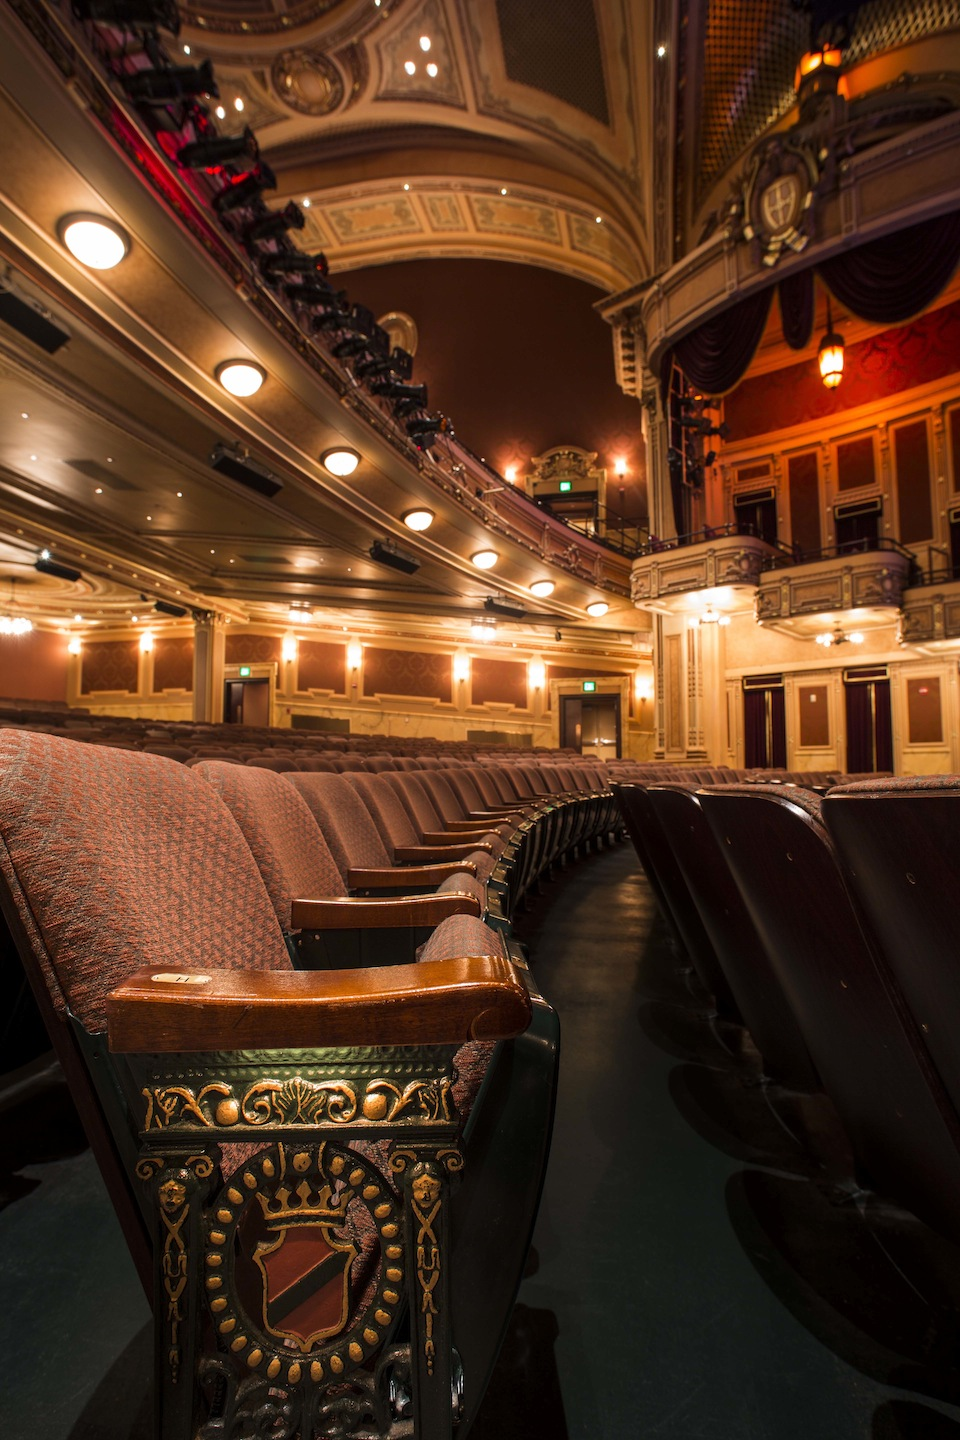 The Hippodrome Theatre At The France Merrick Performing Arts Center